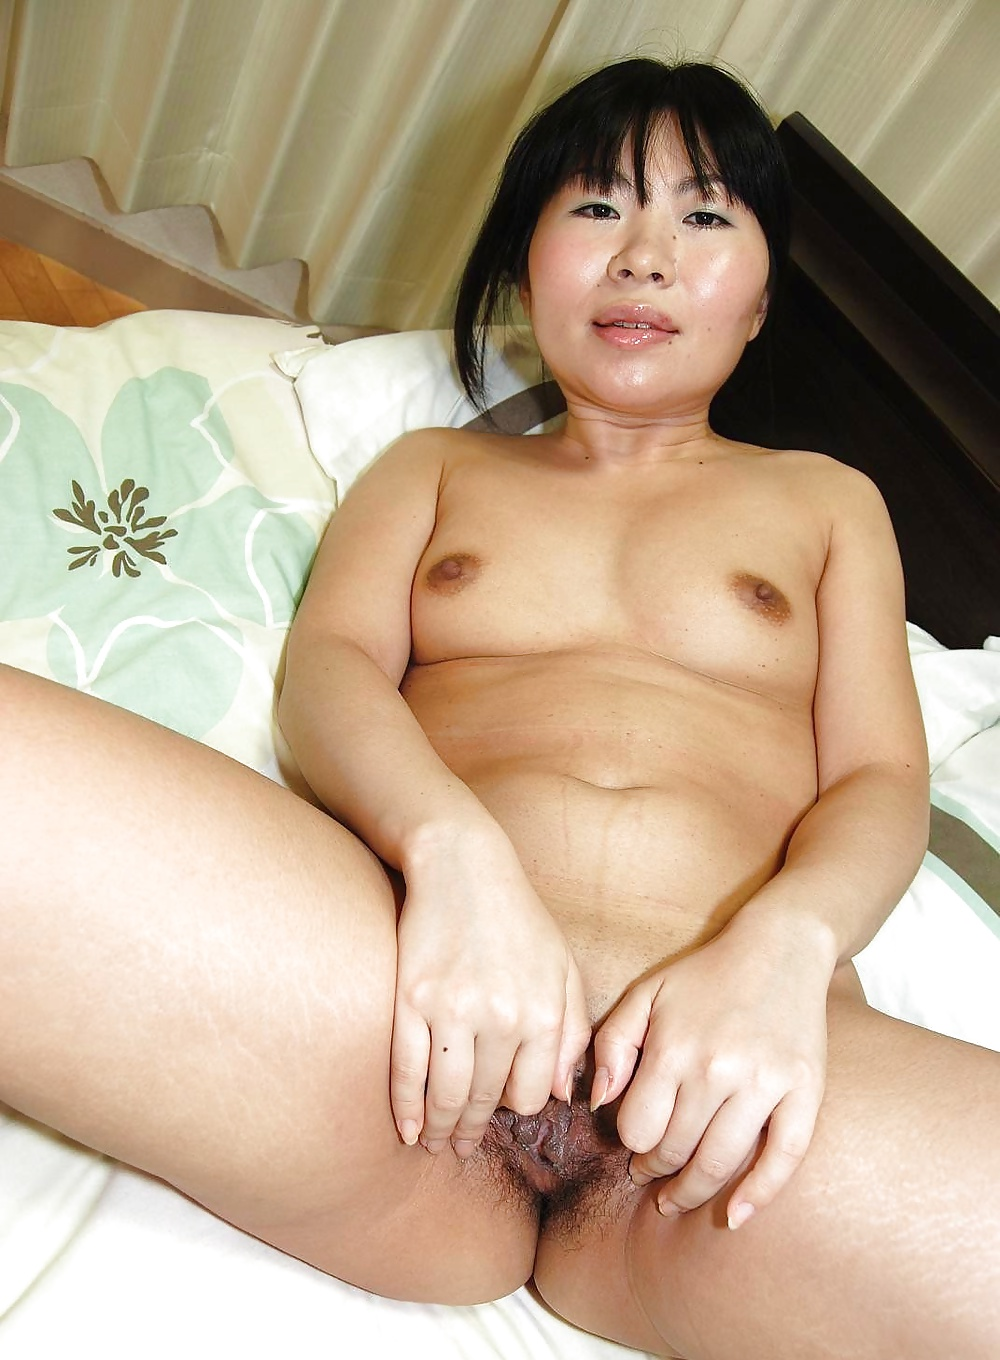 amature japanese females nude